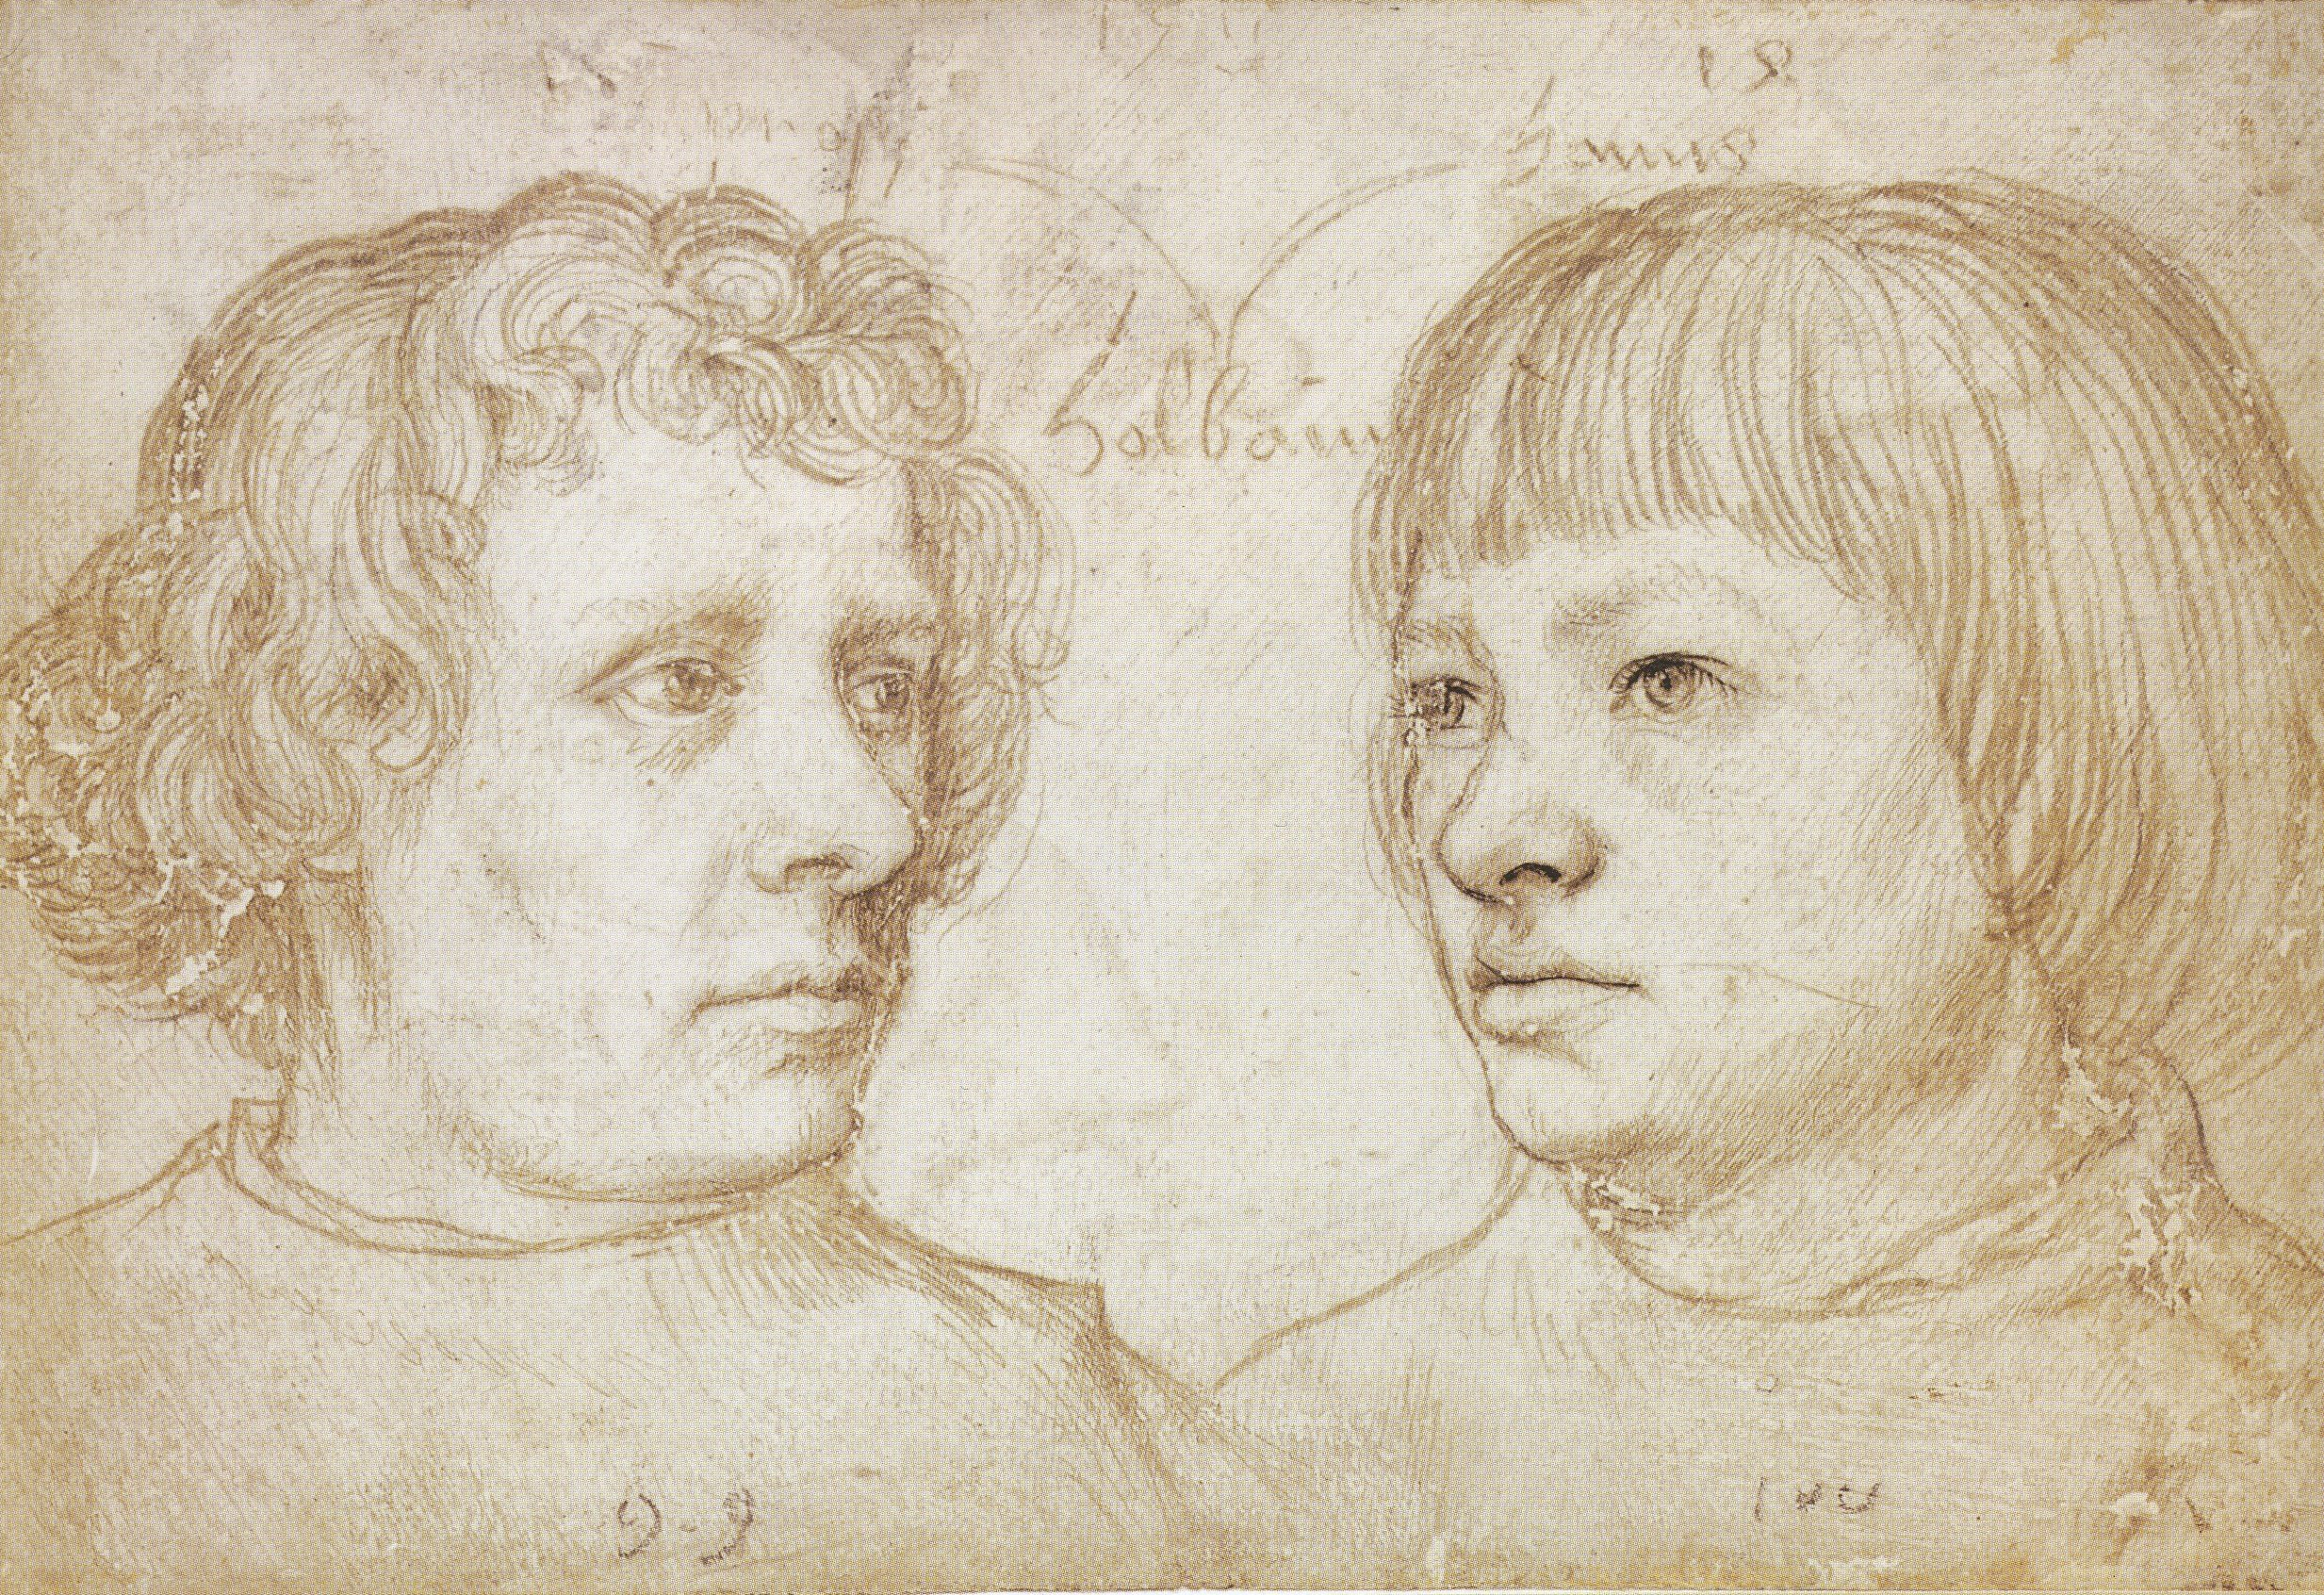 Ambrosius and Hans Holbein. 1511